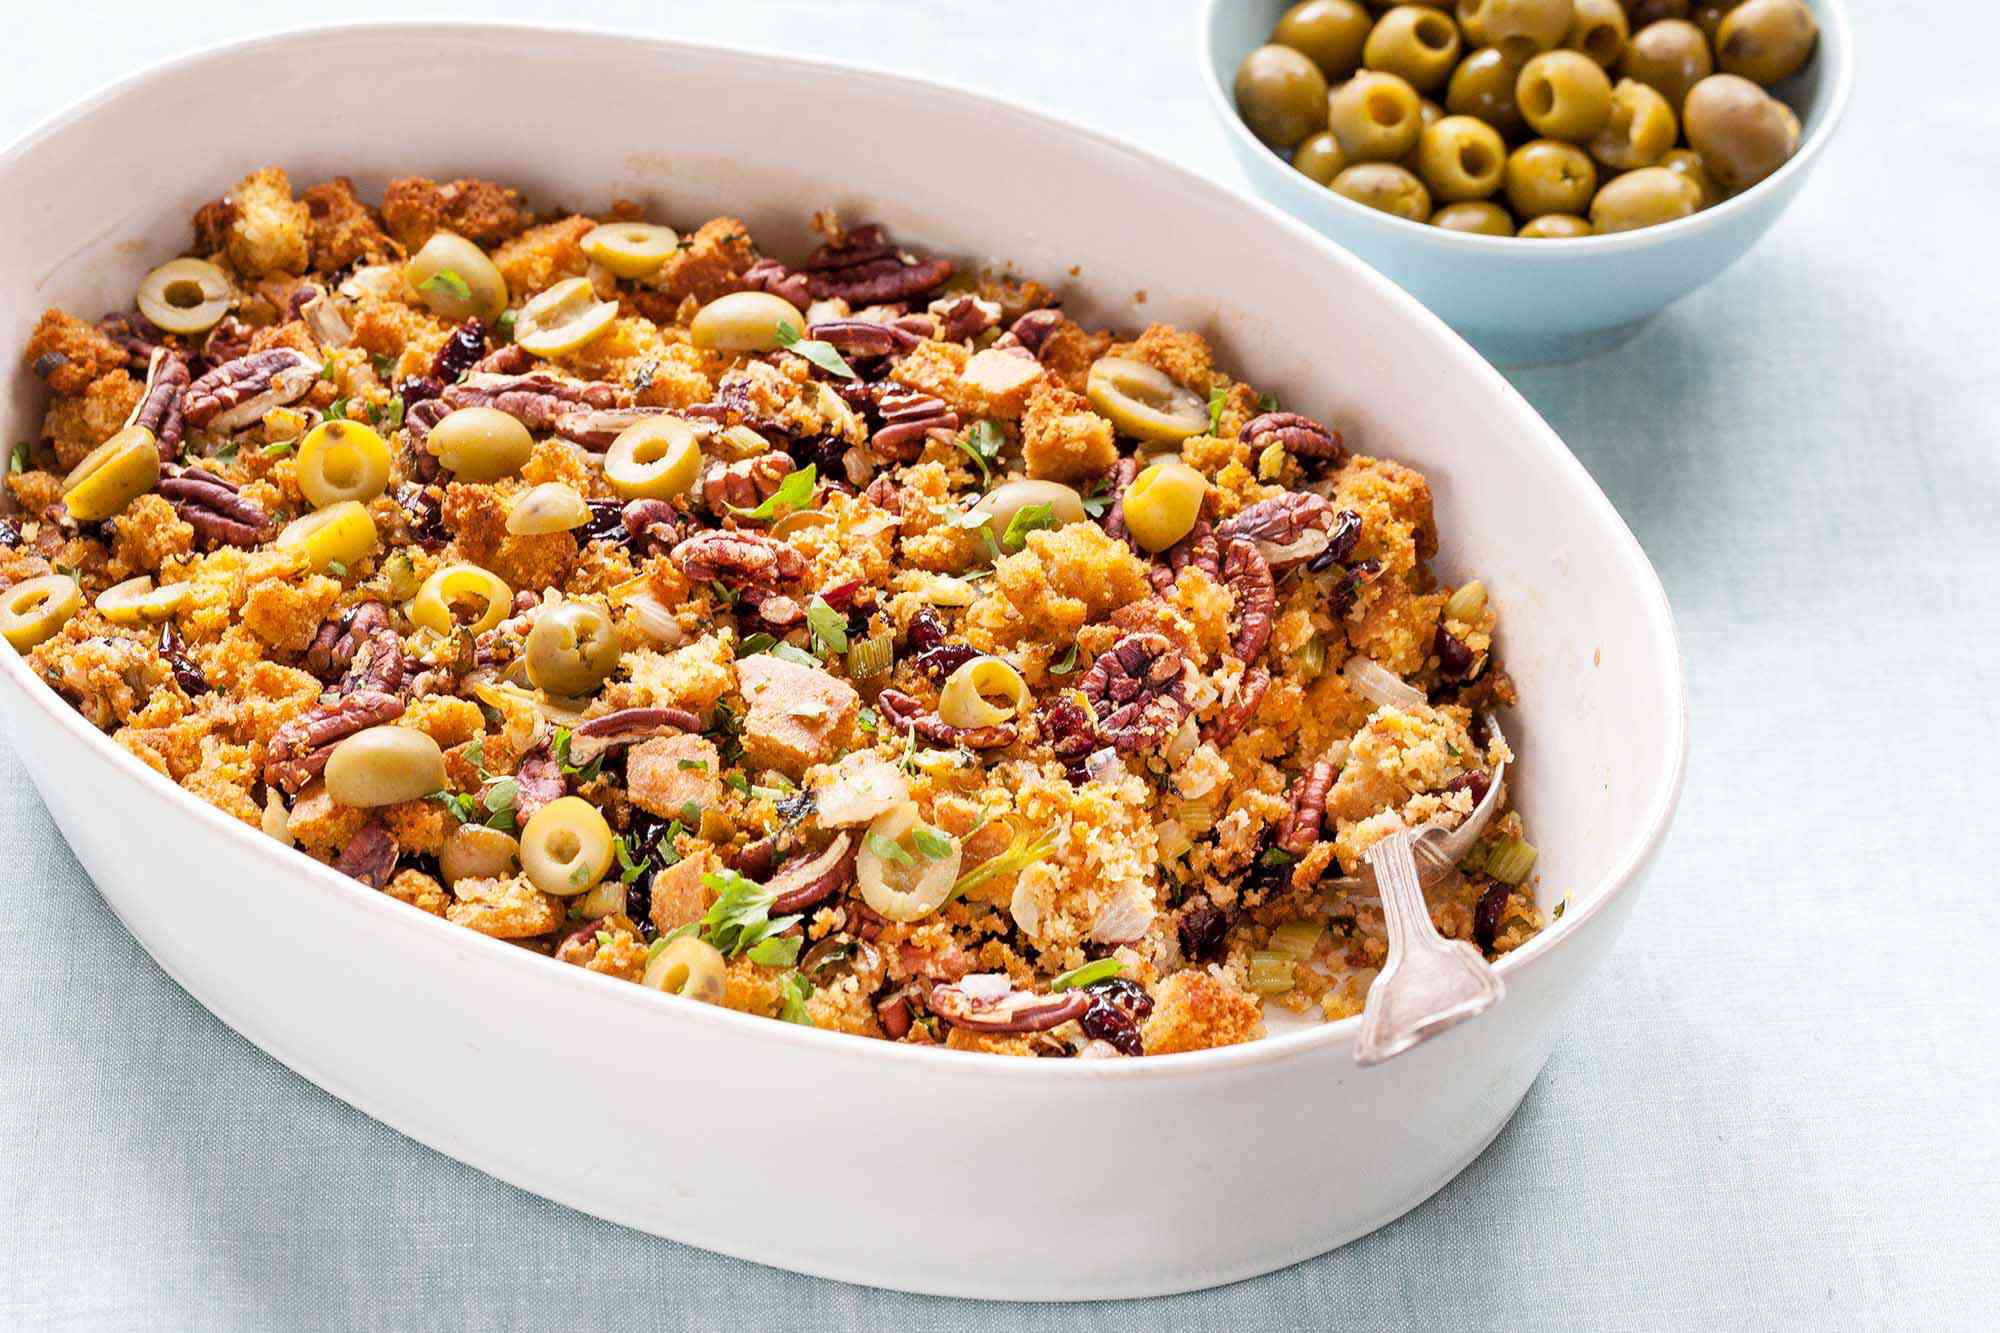 Cornbread Stuffing with Olives and Pecans